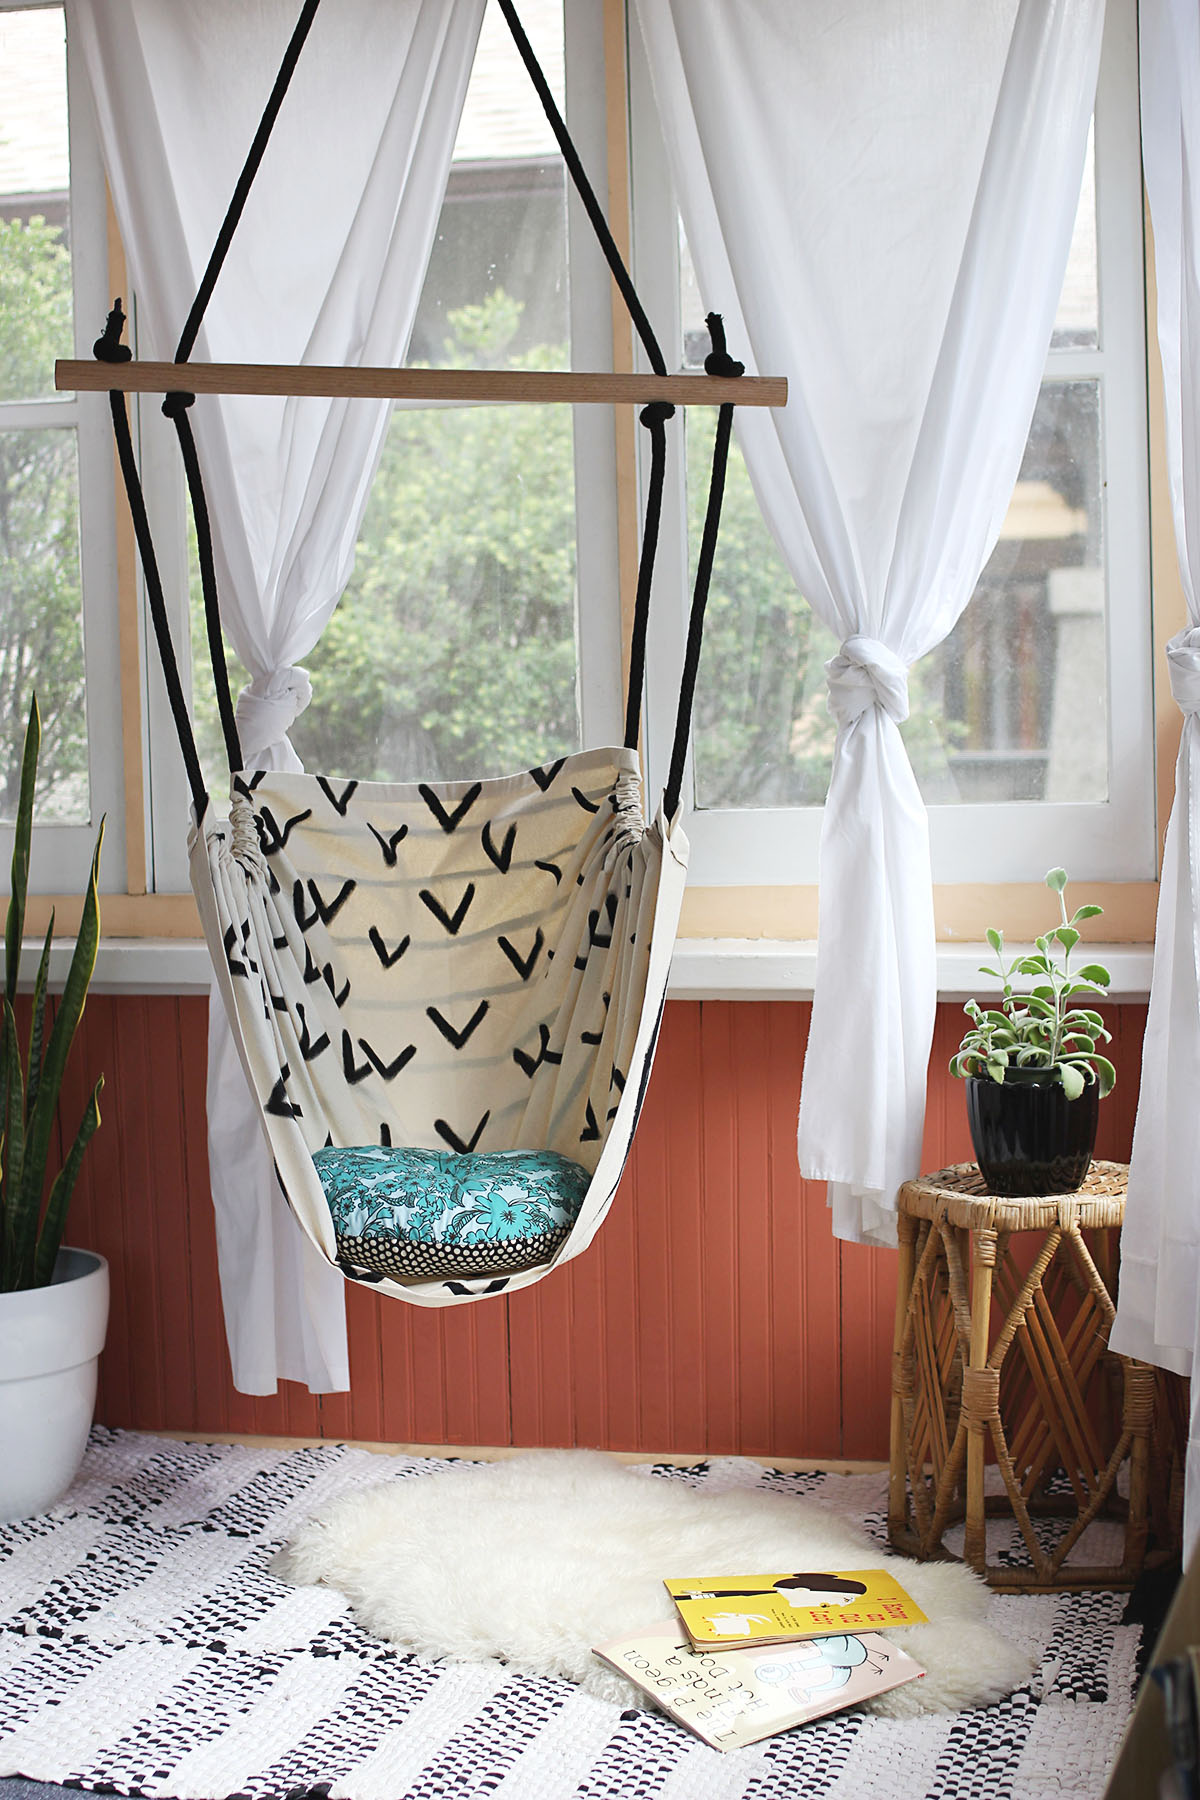 How to make a hanging hammock